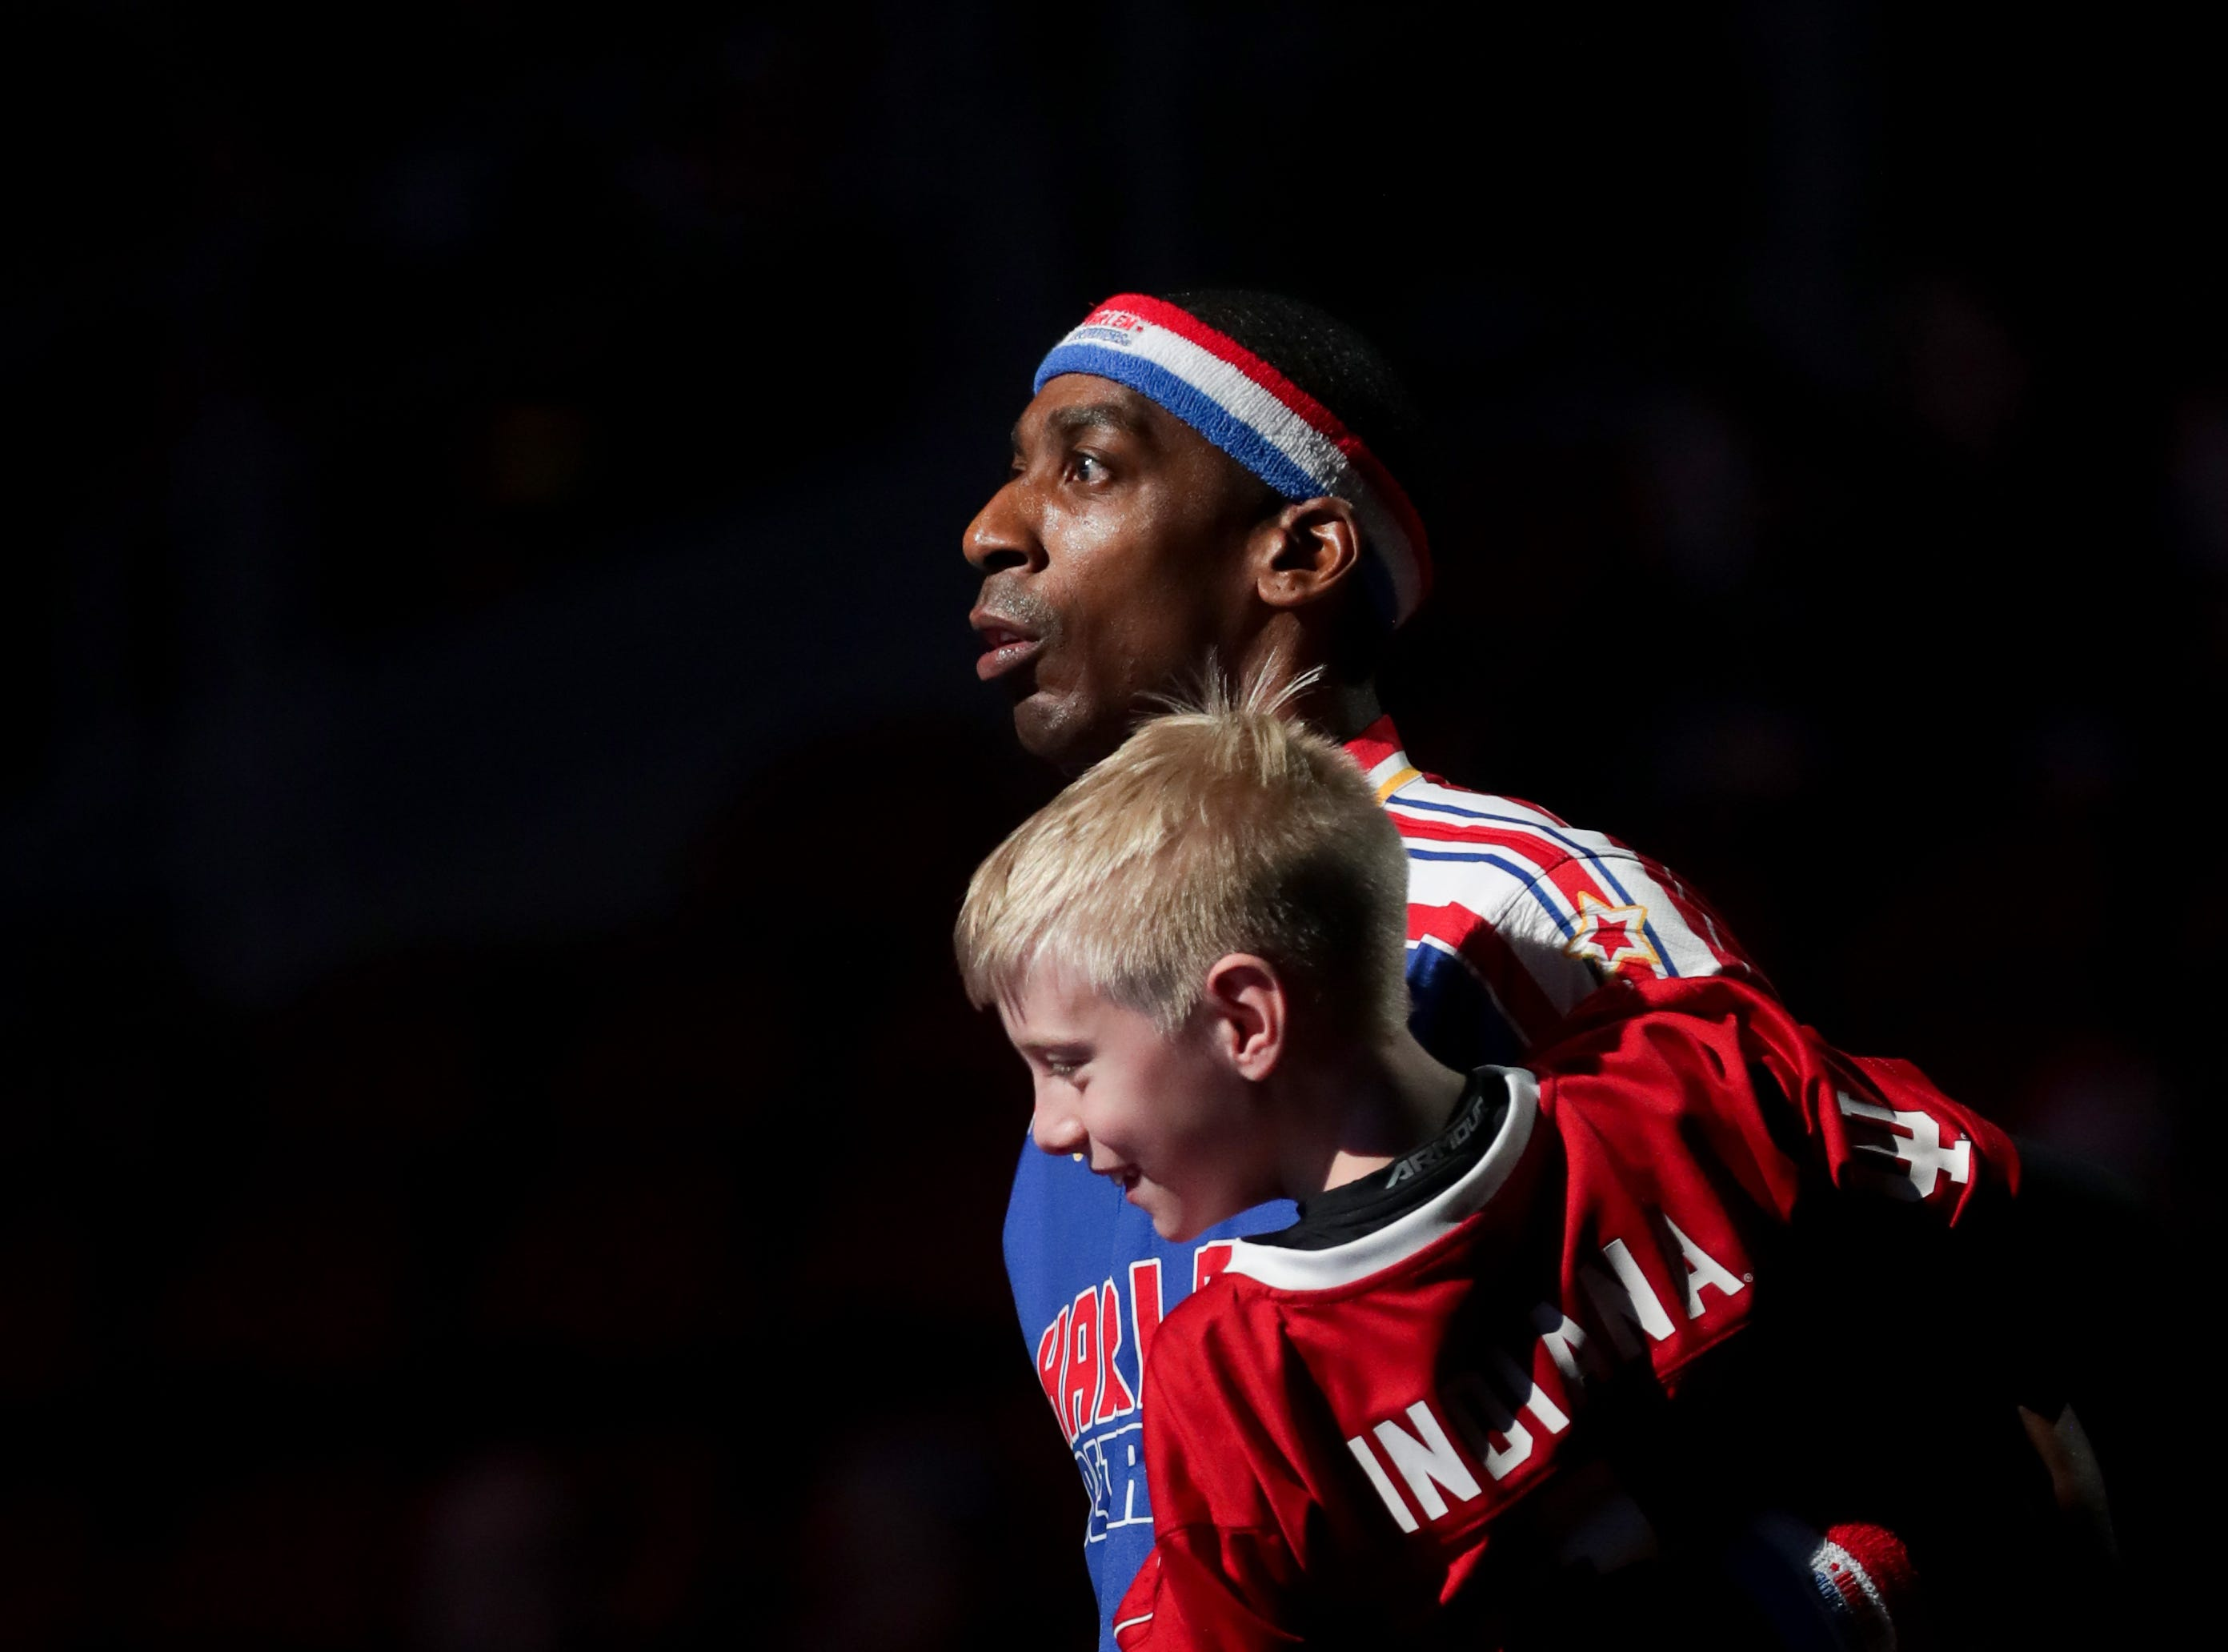 Harlem Globetrotters' Hi-Lite grabs a kid from the audience during player introductions.